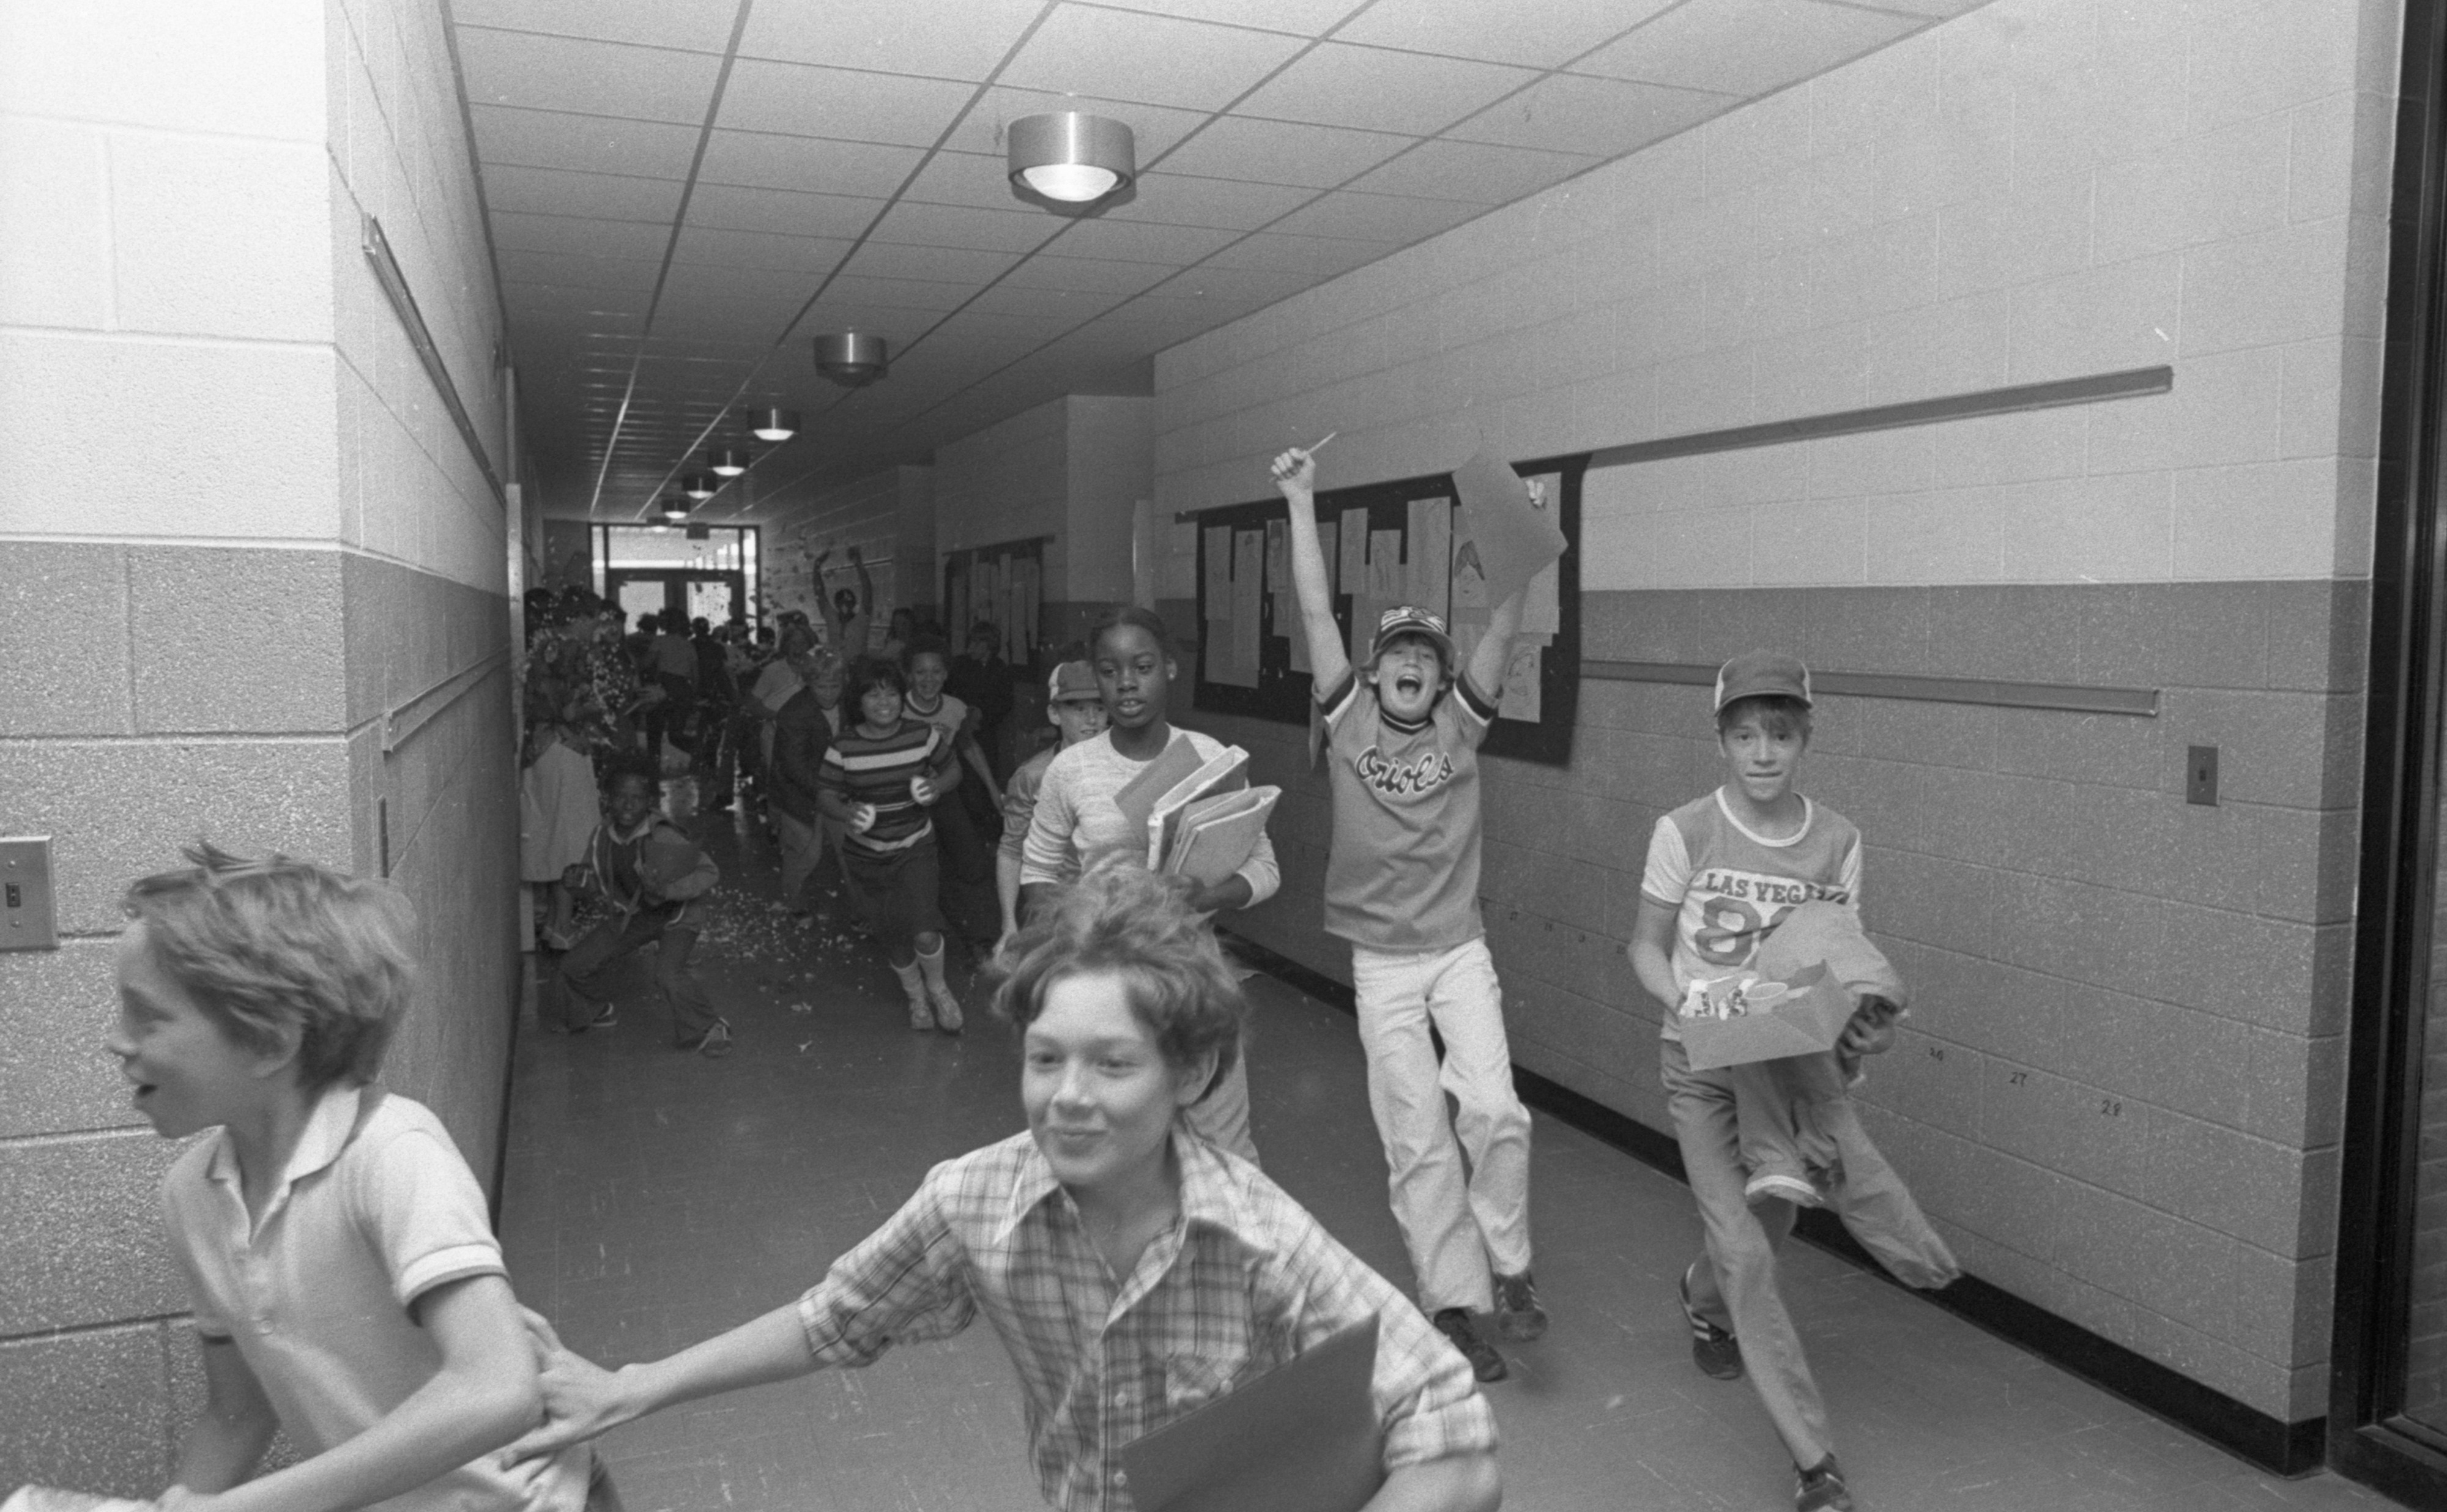 Image from Students Leave Stone School On Last Day Of School Year, June 1980